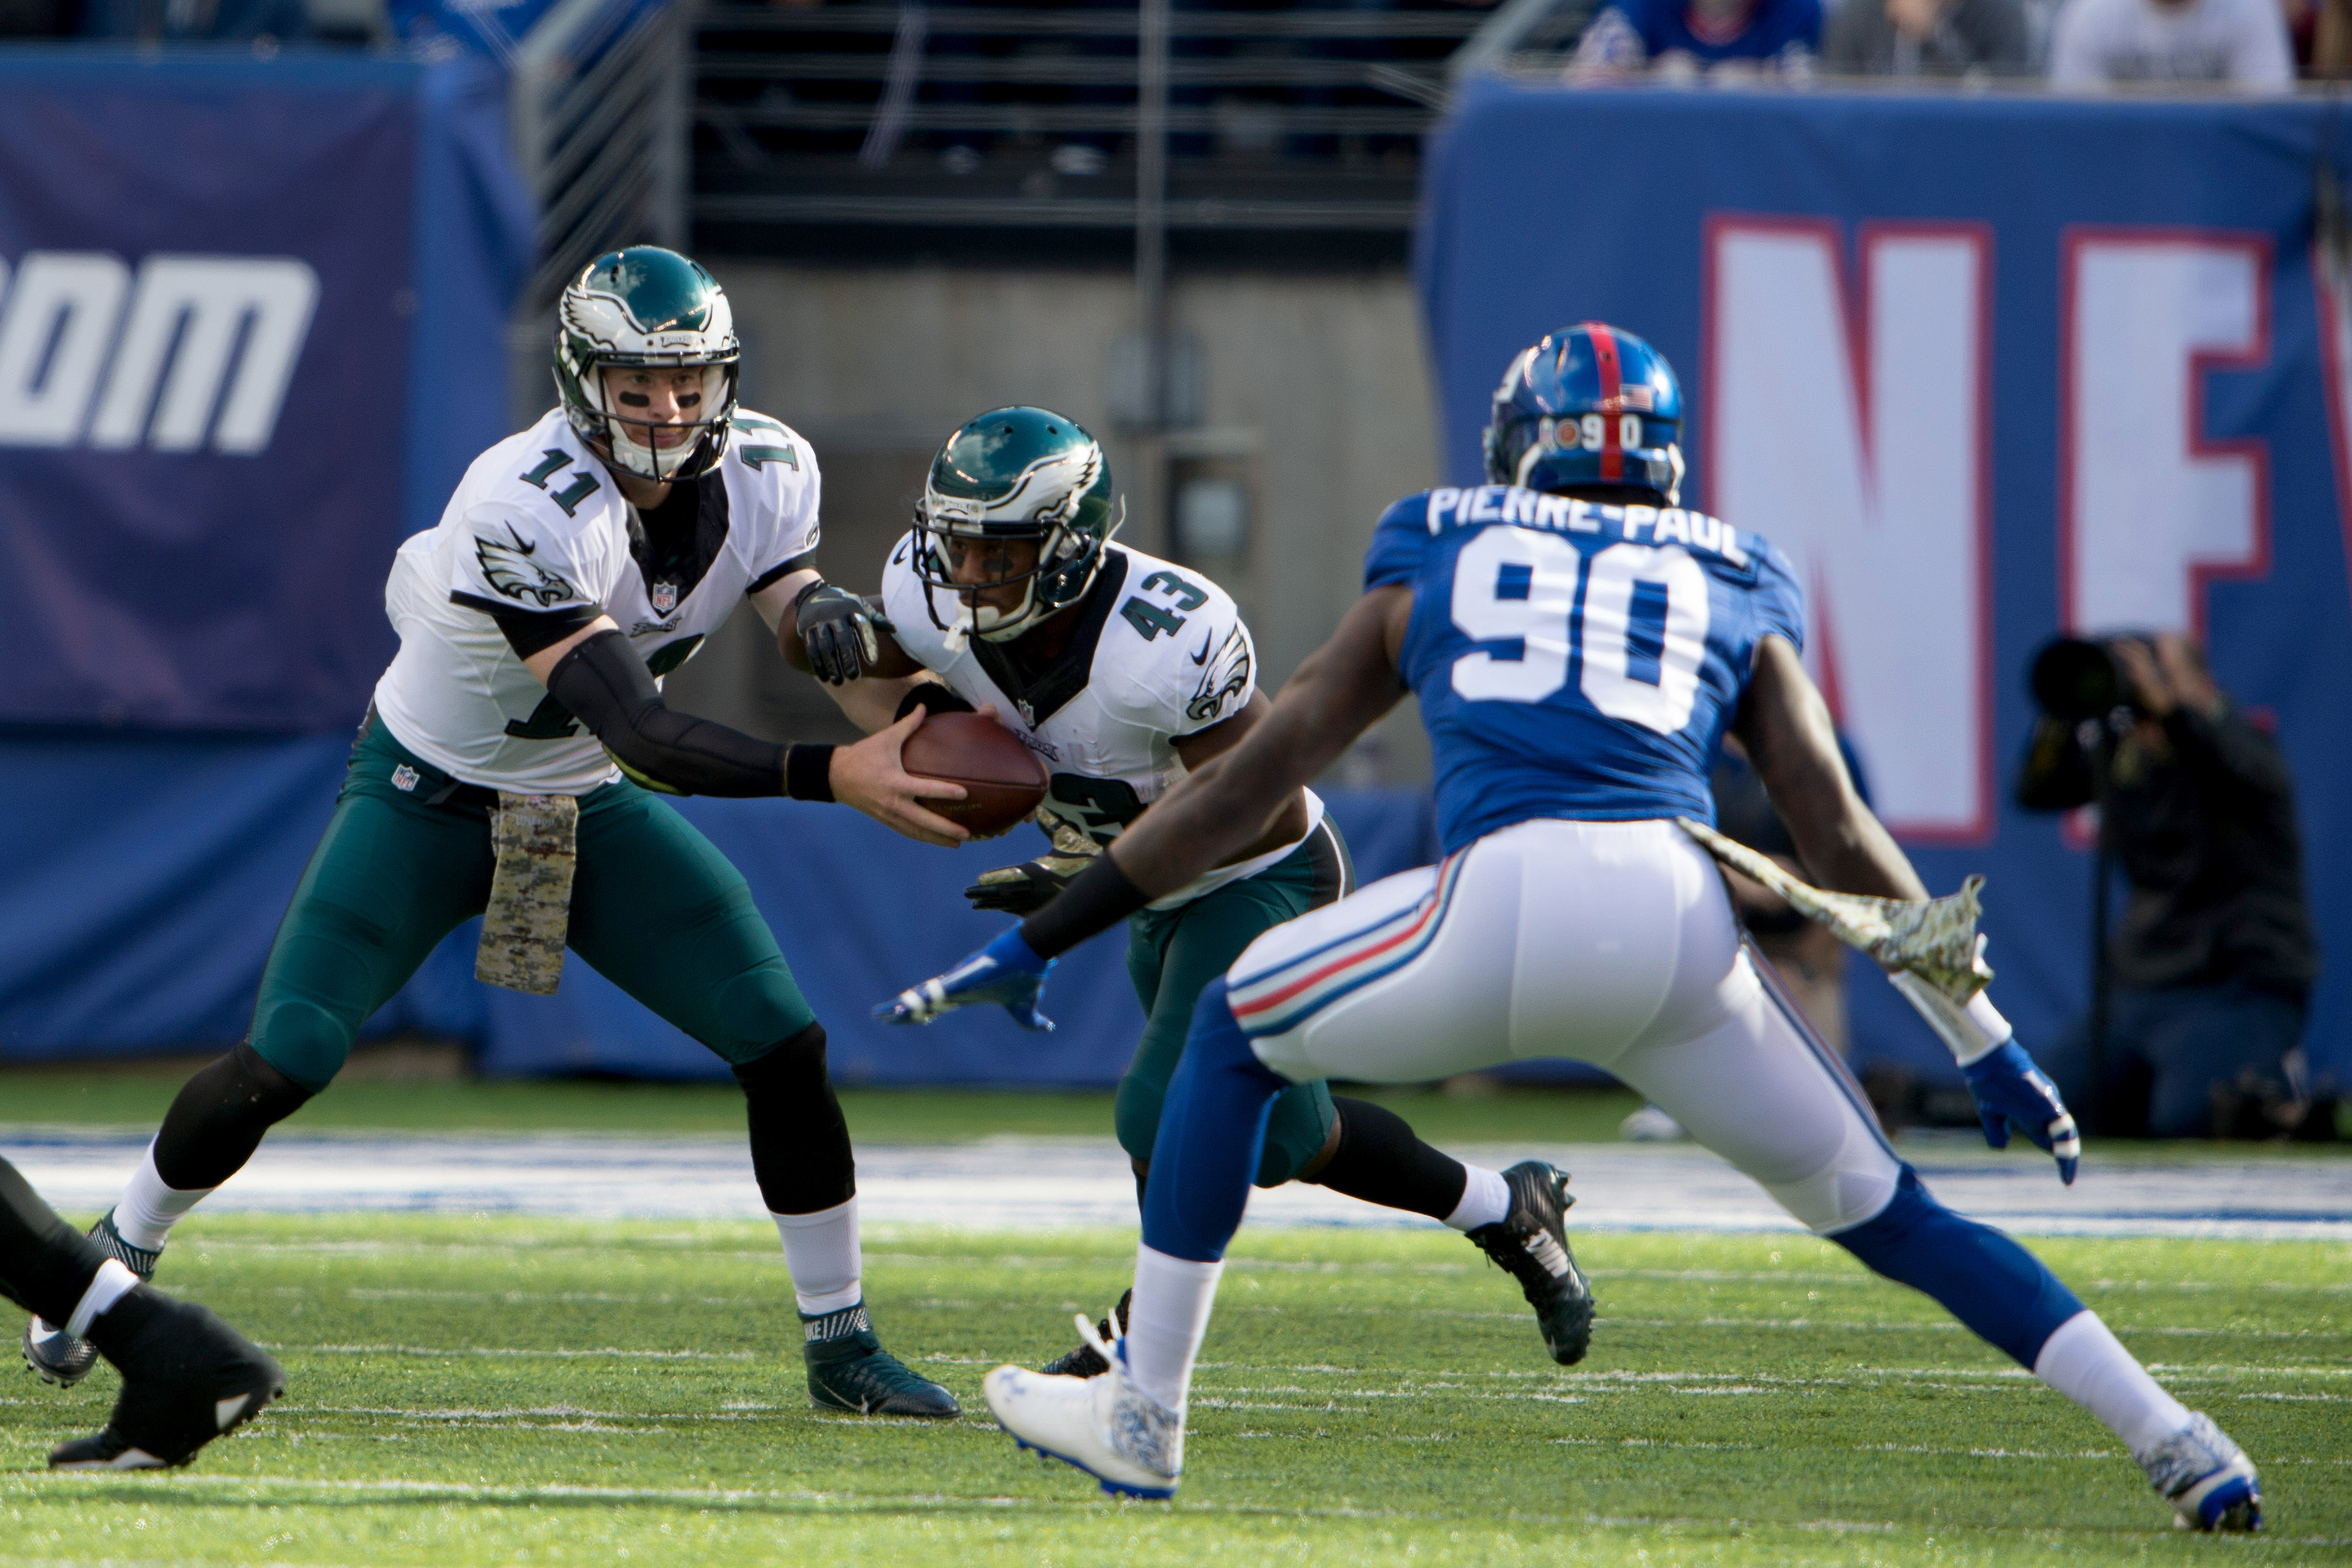 Giants vs. Eagles, All-22 review: What can we learn from a ...